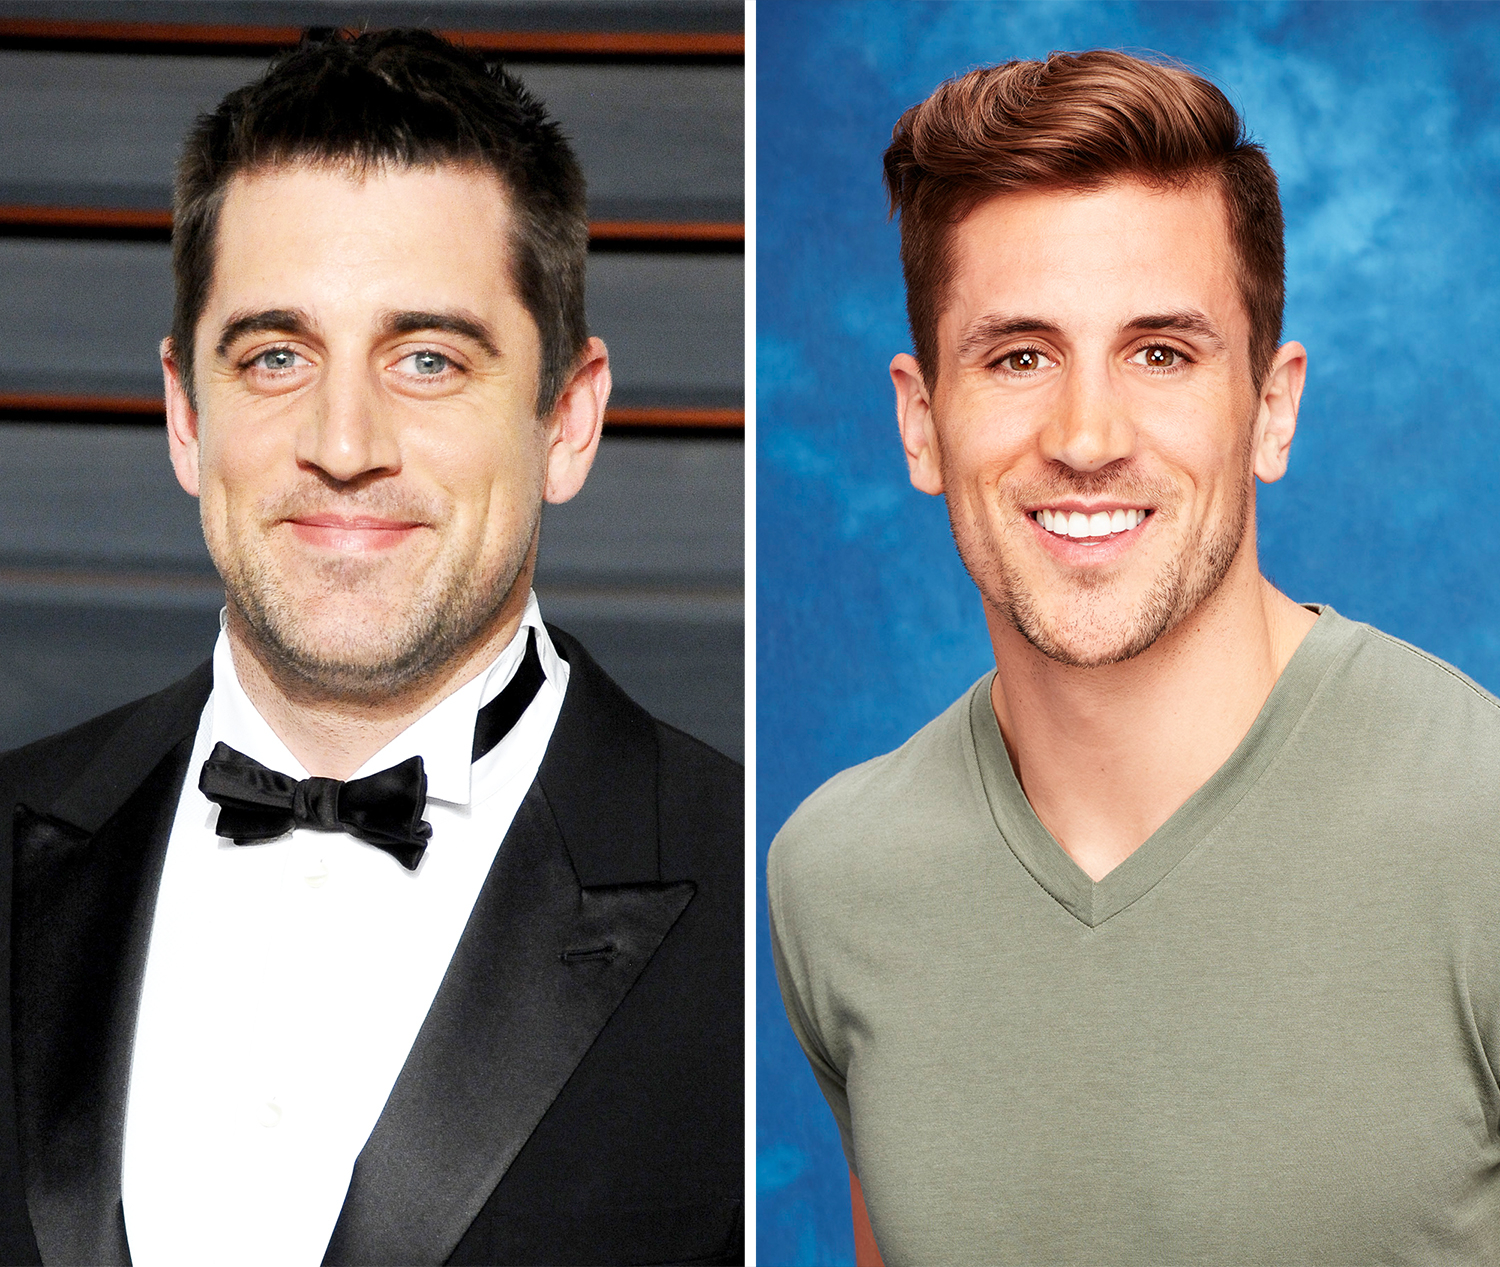 Aaron Rodgers and Jordan Rodgers